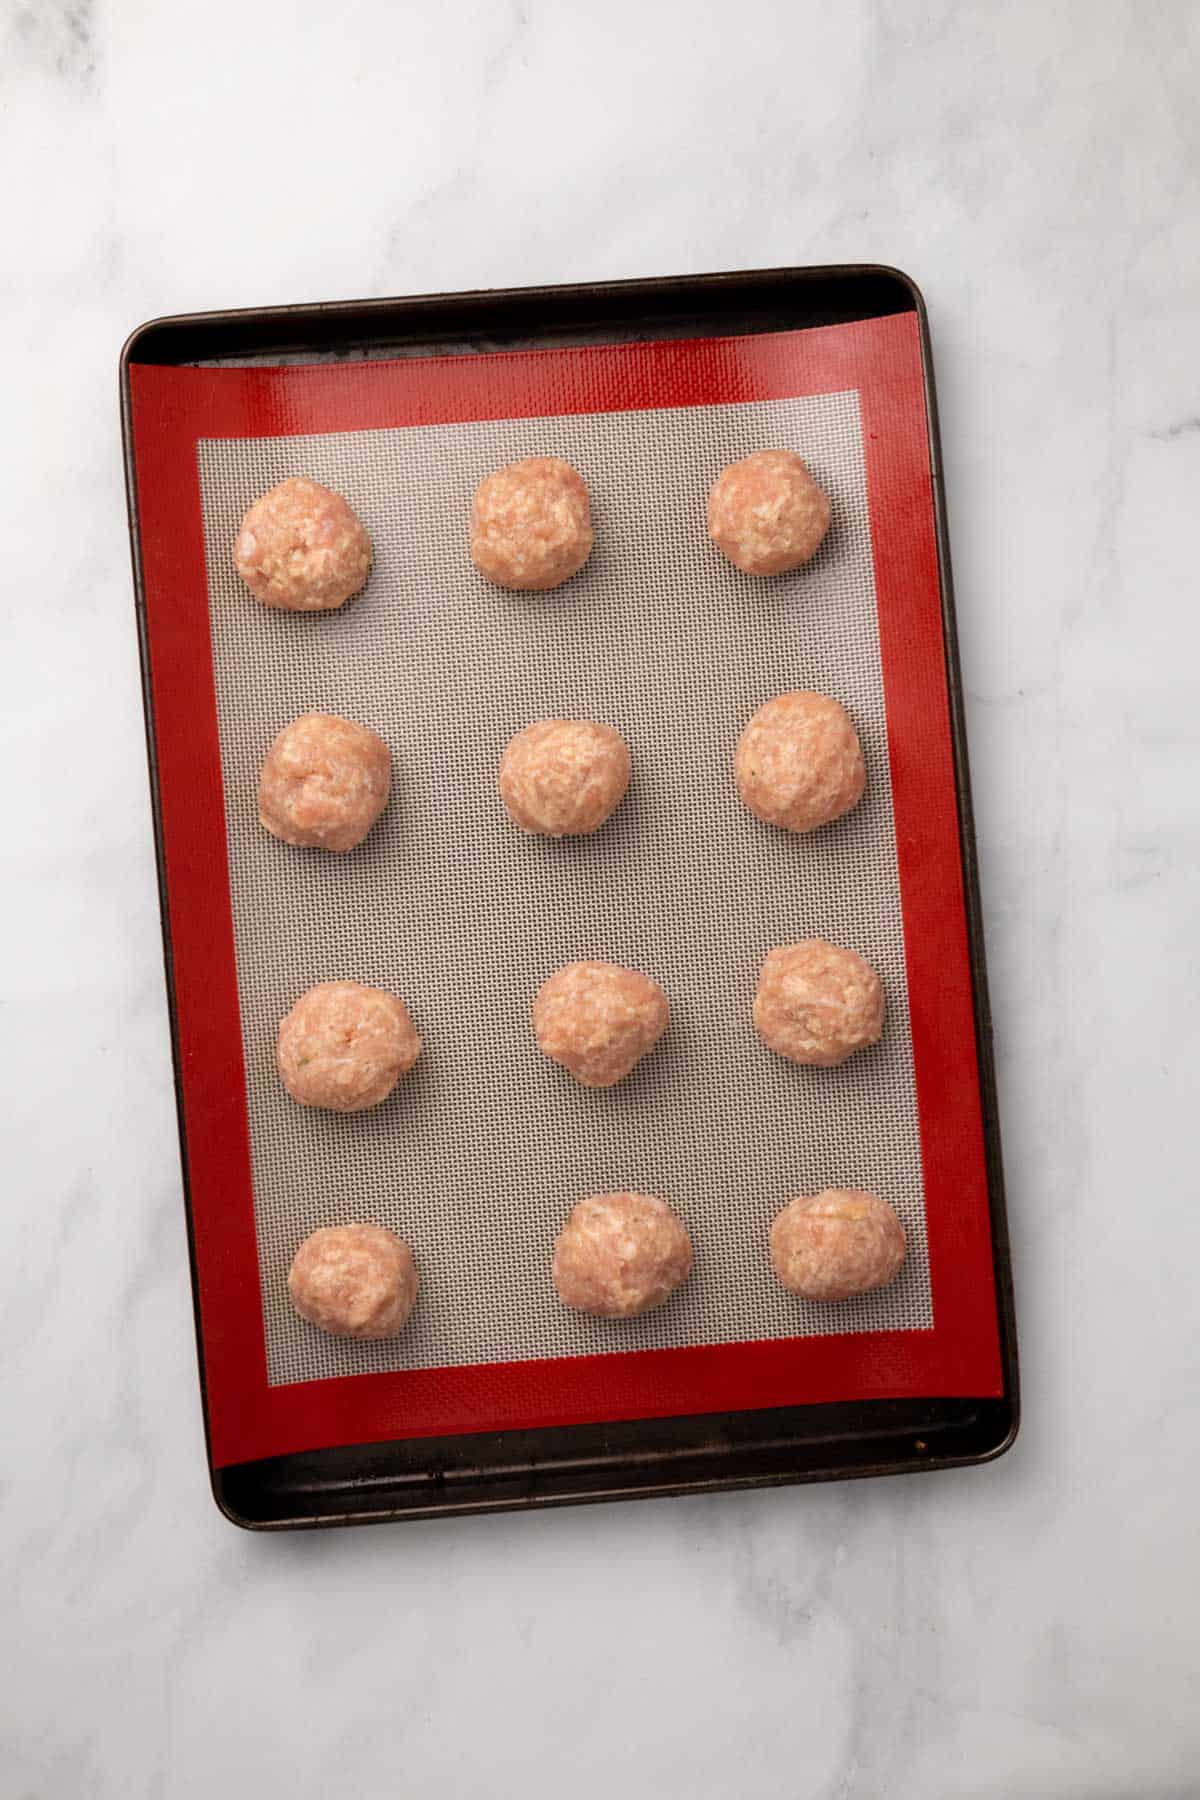 Prepared meatballs on a baking tray, ready to go in the oven